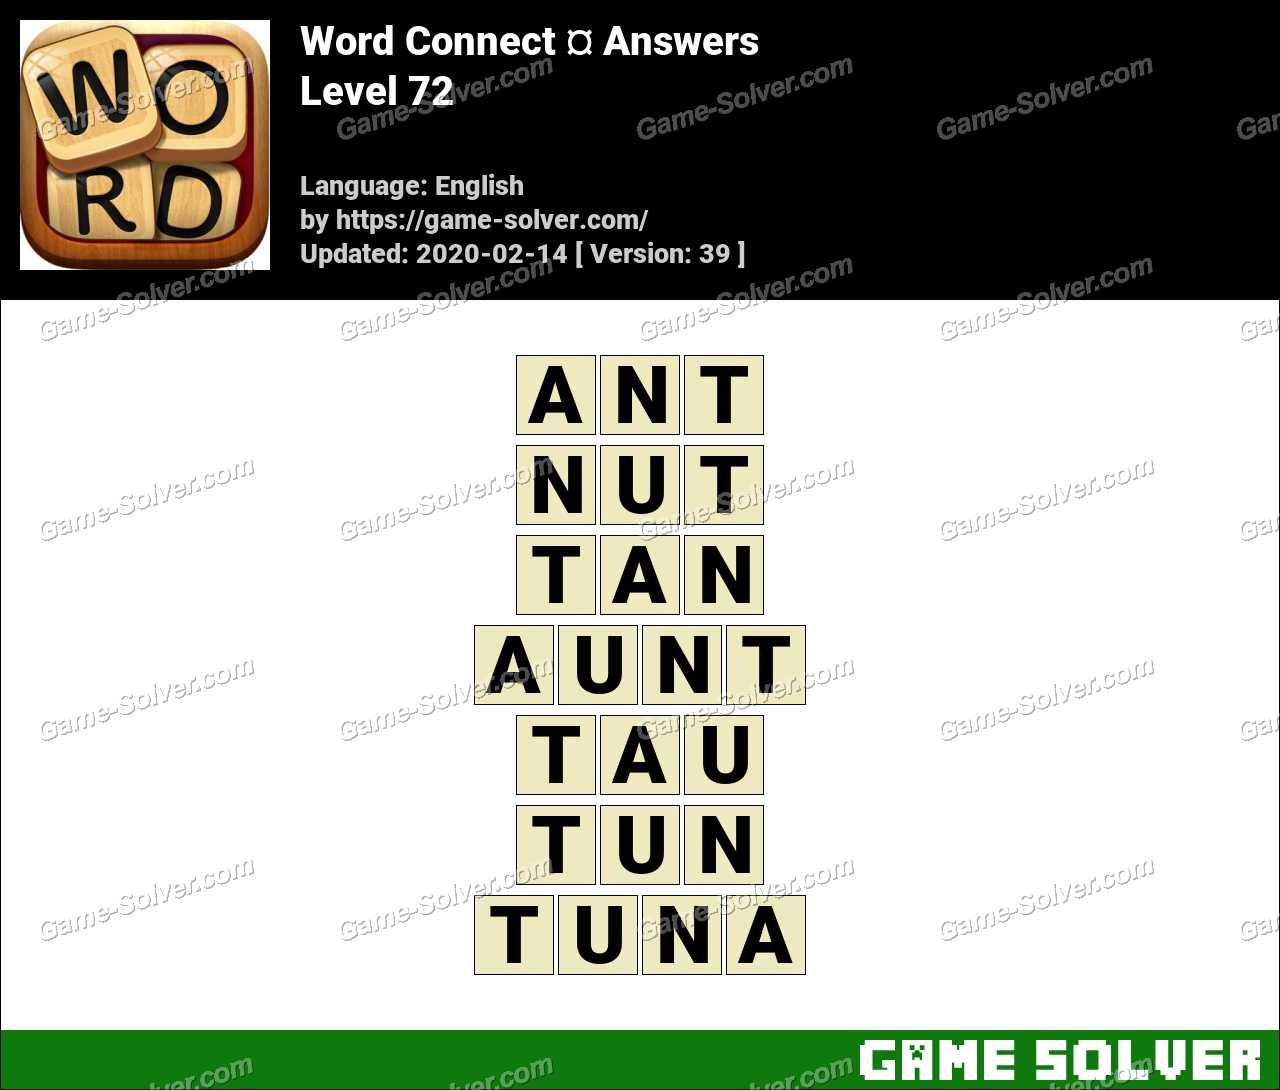 Word Connect Level 72 Answers